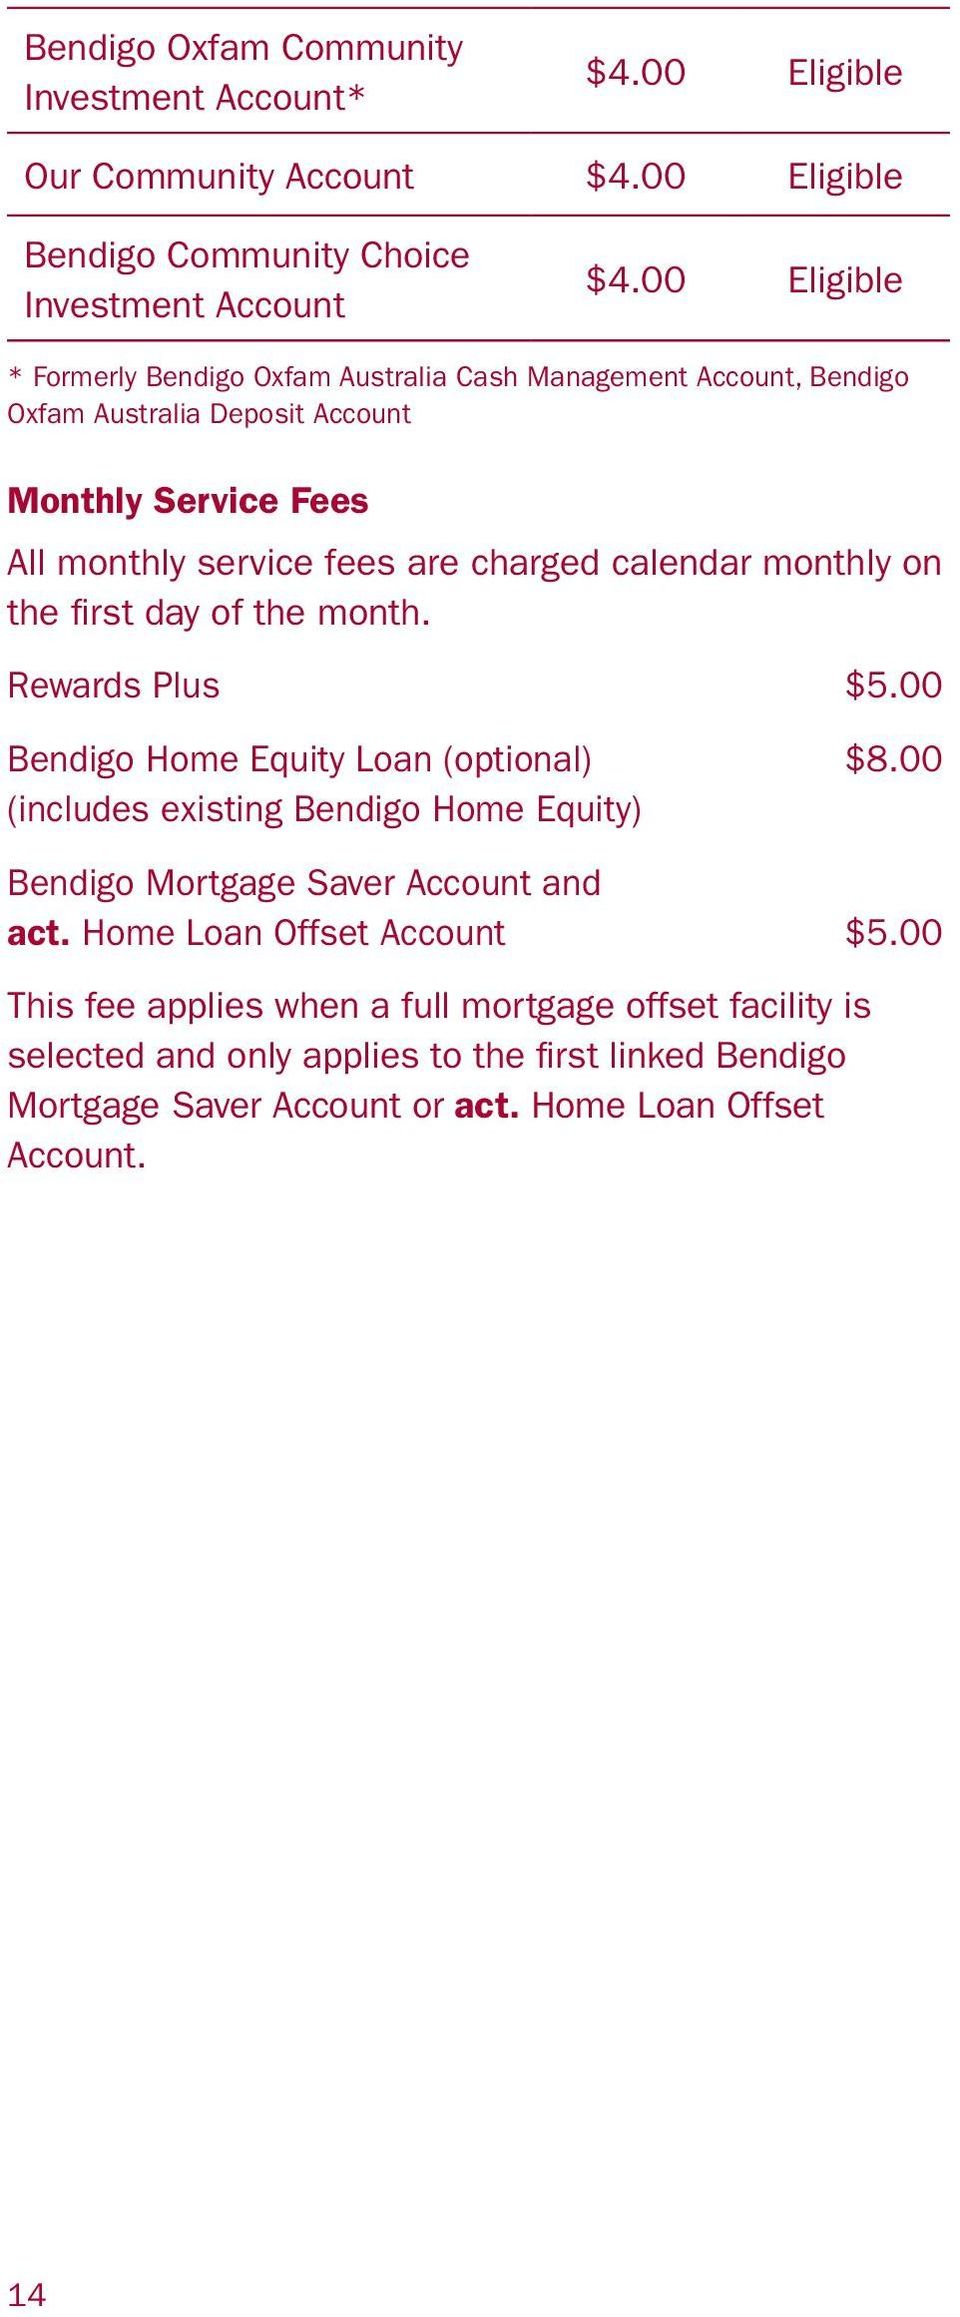 calendar monthly on the first day of the month. Rewards Plus $5.00 Bendigo Home Equity Loan (optional) $8.